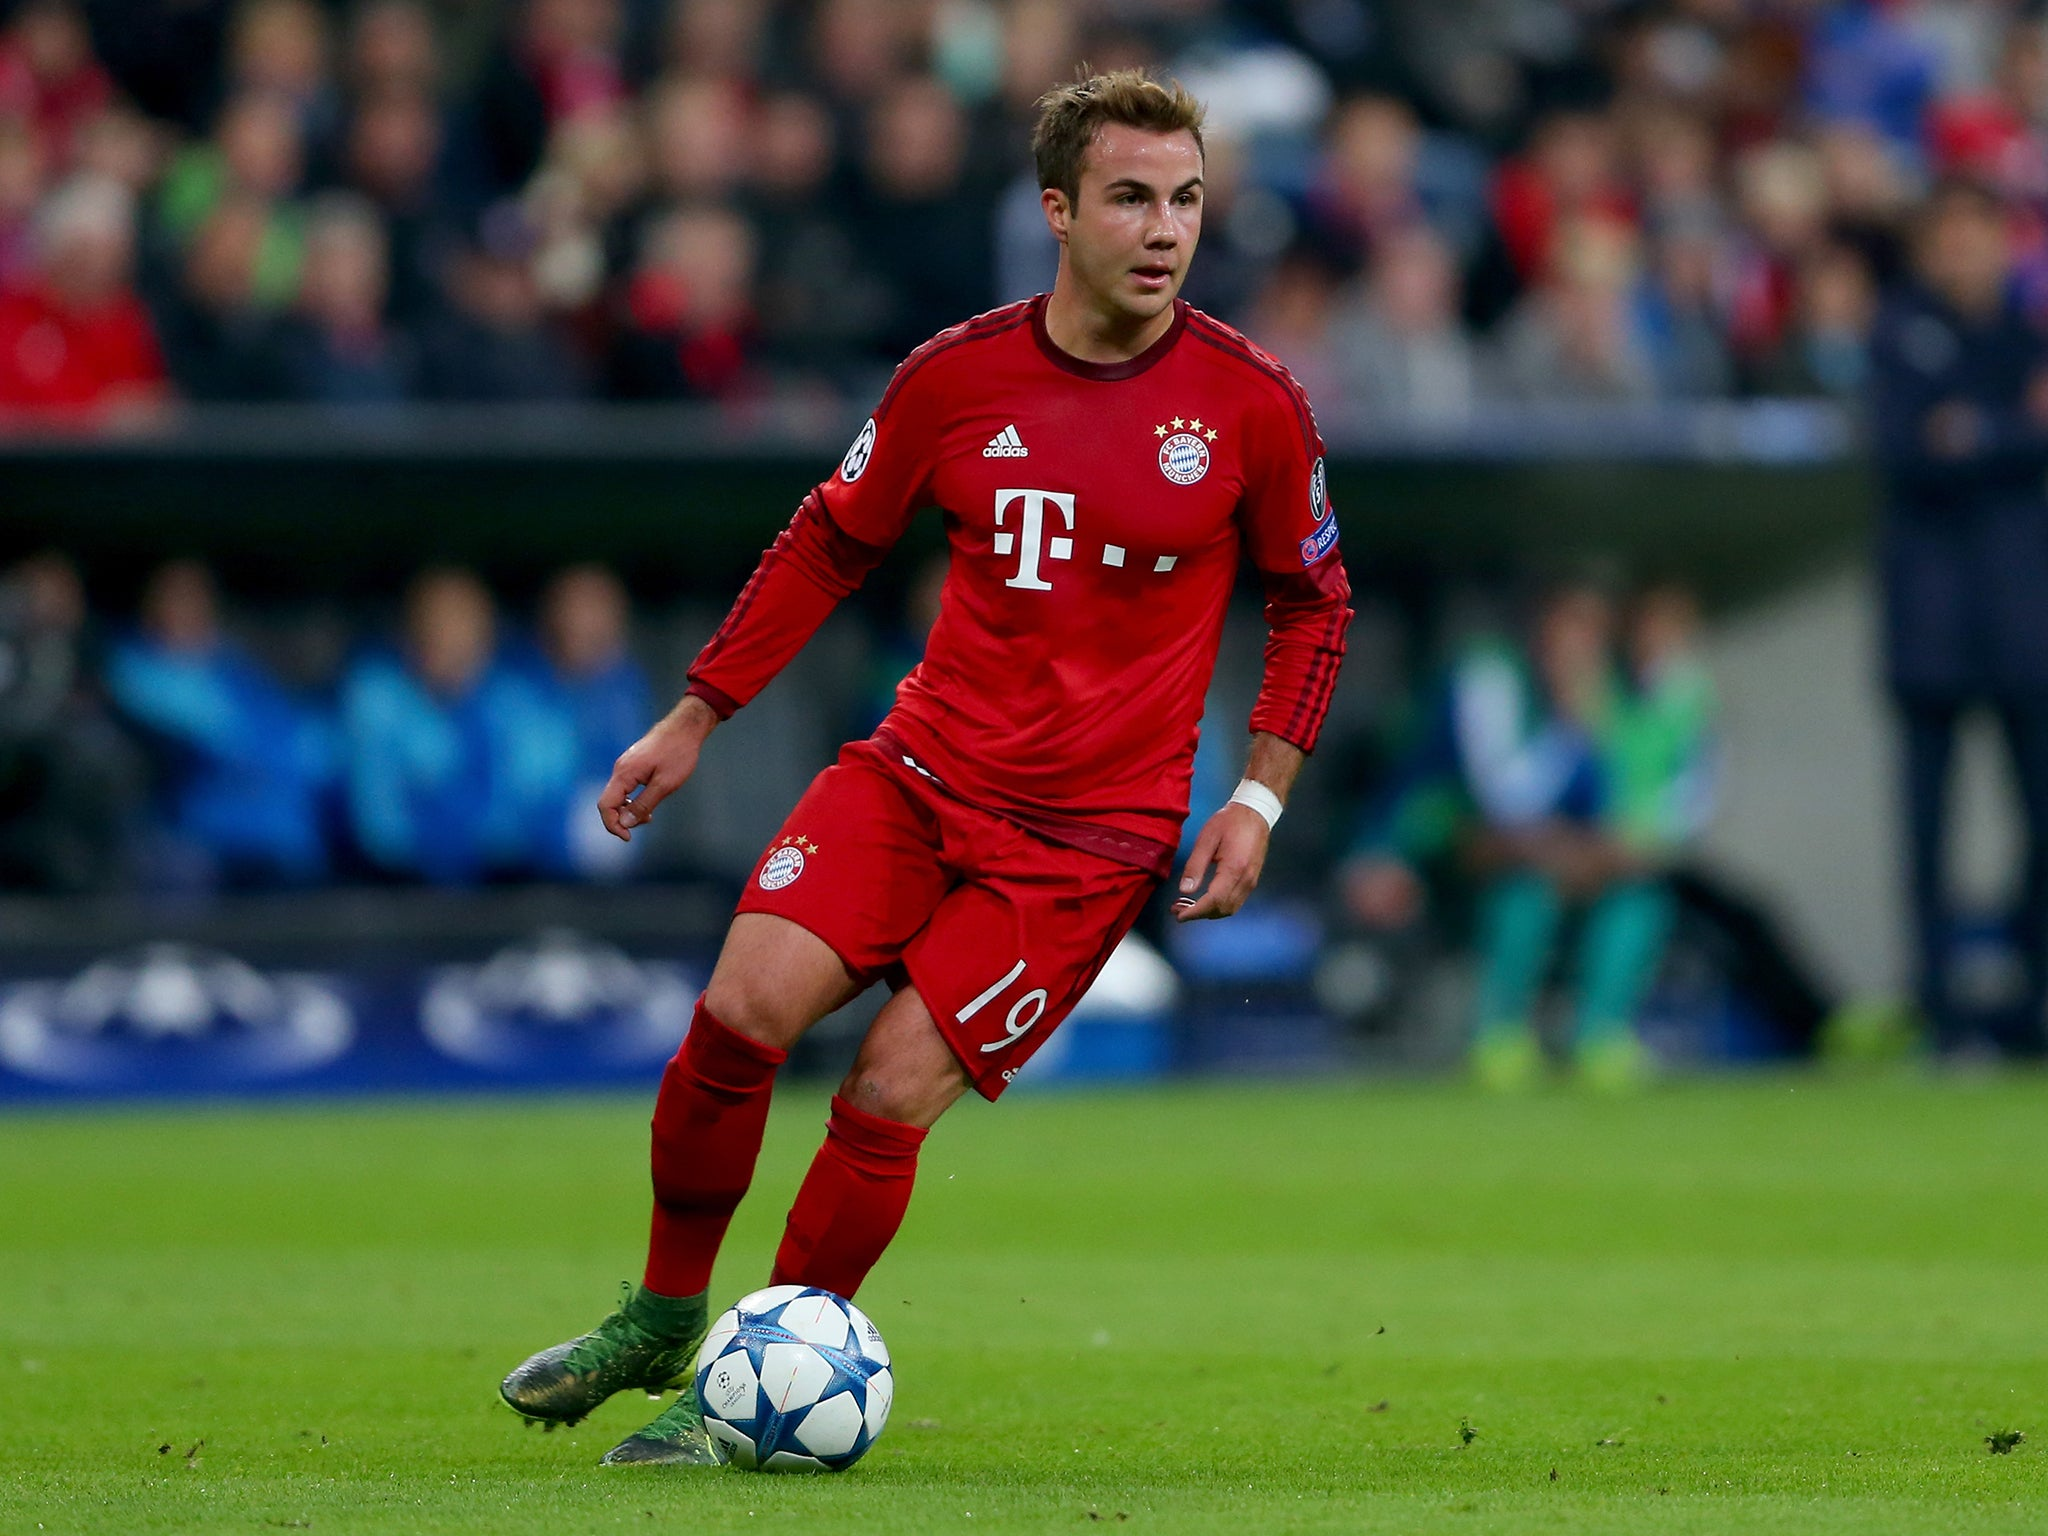 mario gotze to liverpool bayern munich star reveals he texts jurgen klopp the independent. Black Bedroom Furniture Sets. Home Design Ideas